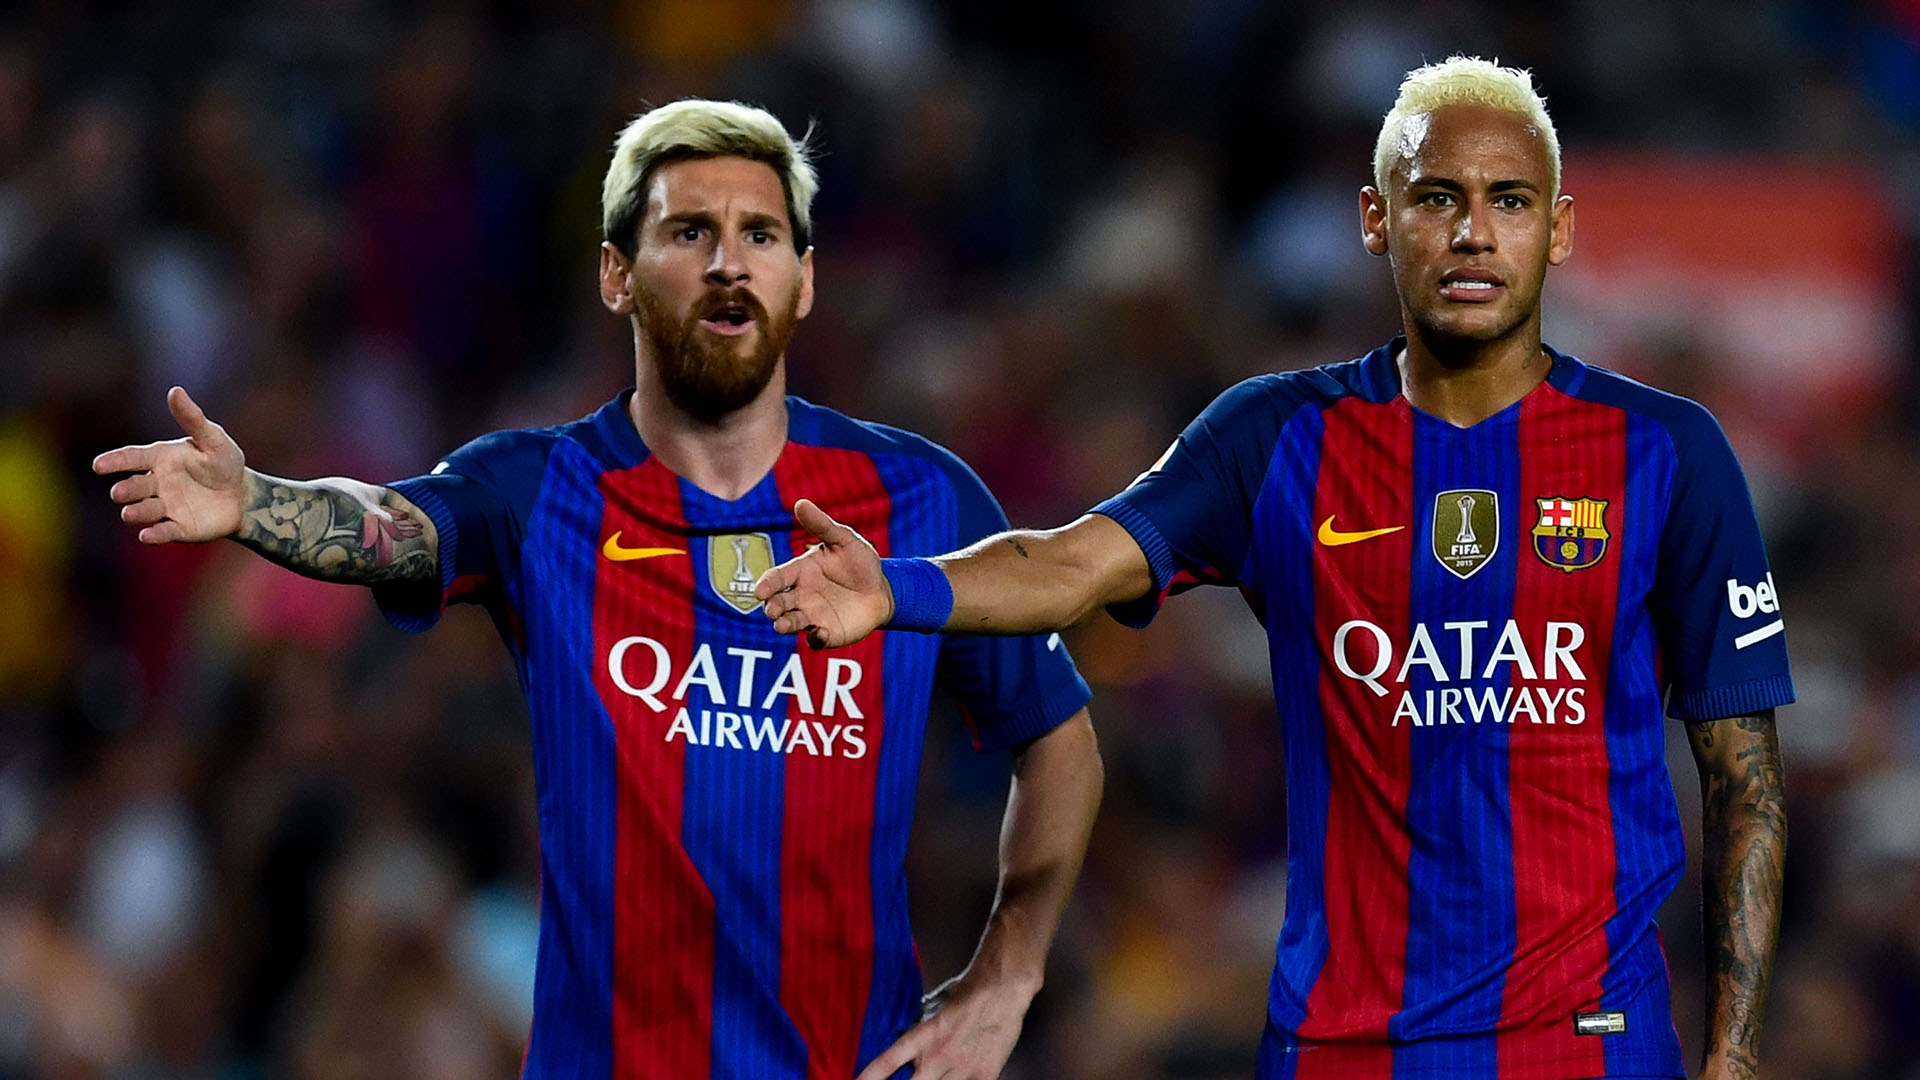 He S Not Far From Messi And Ronaldo Cafu Tips Neymar To Be